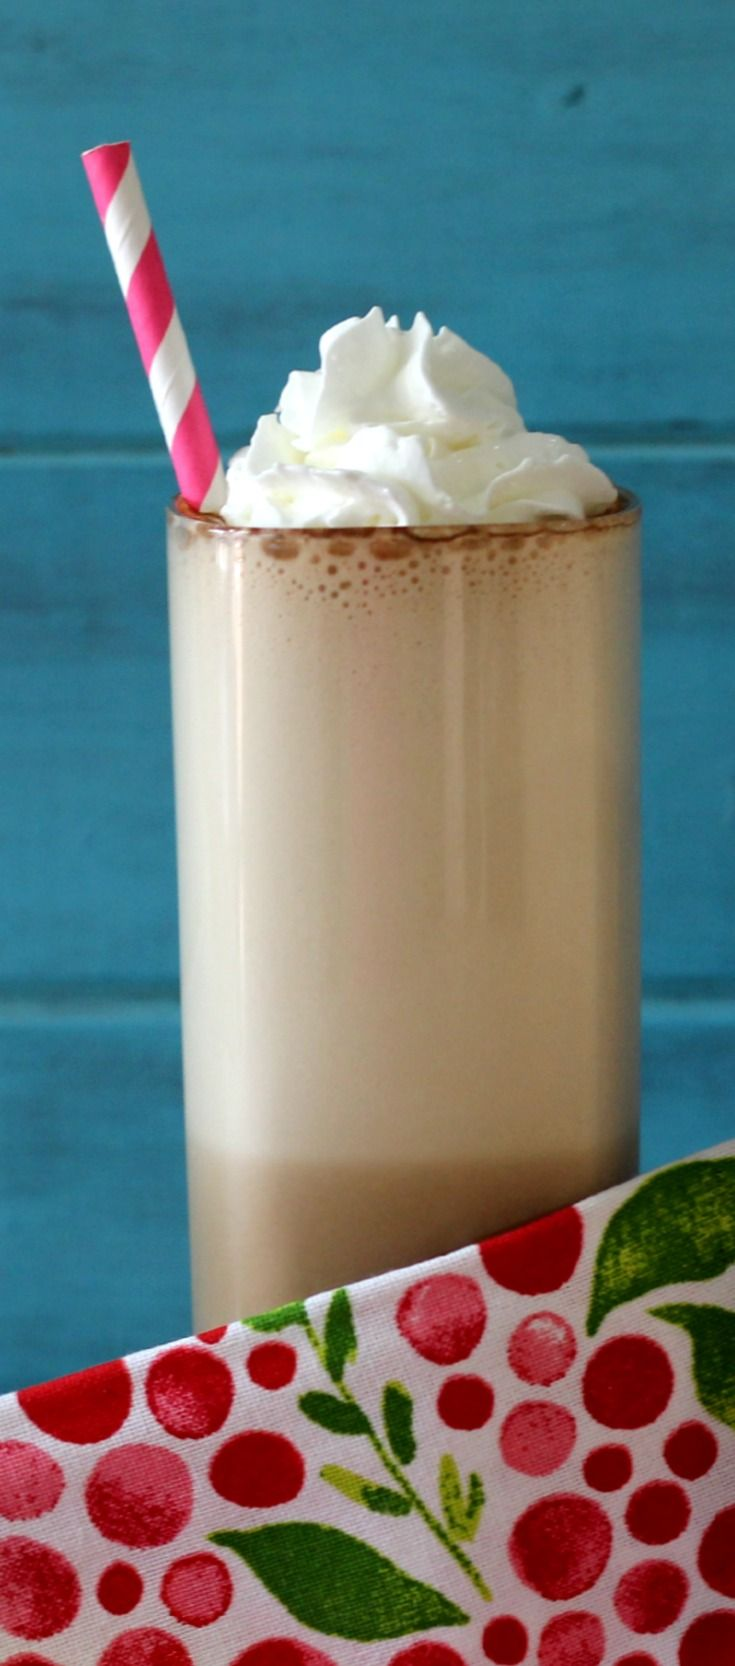 Malted Mocha Ice Coffee Recipe Coffee recipes, Malted